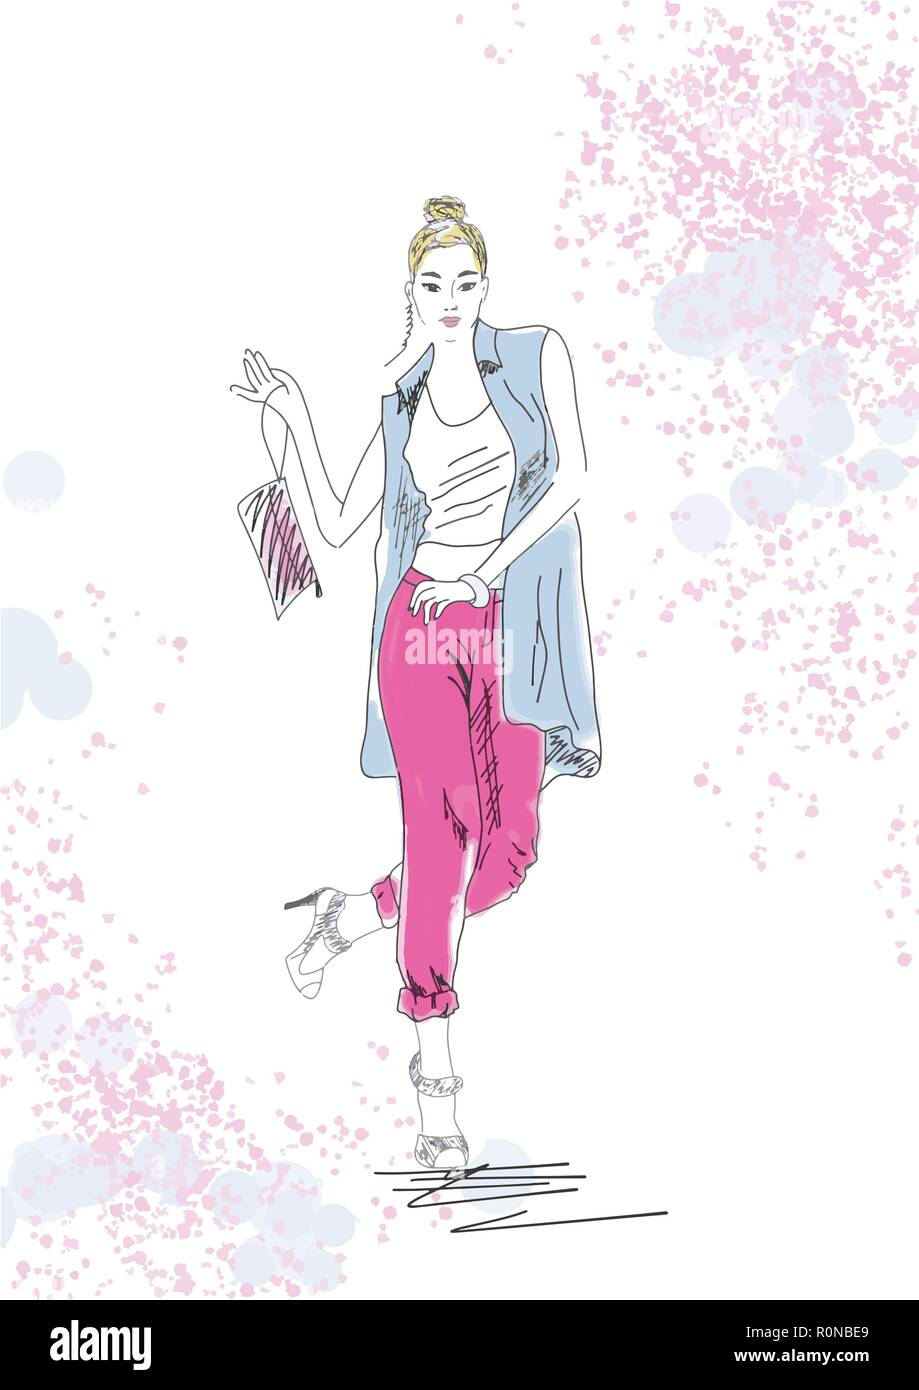 Beautiful Young Fashion Girl Stylish Woman In Summer Fashion Clothes Hand Drawn Girl With Bag Sketch Vector Summer Illustration Eps 10 Stock Vector Image Art Alamy